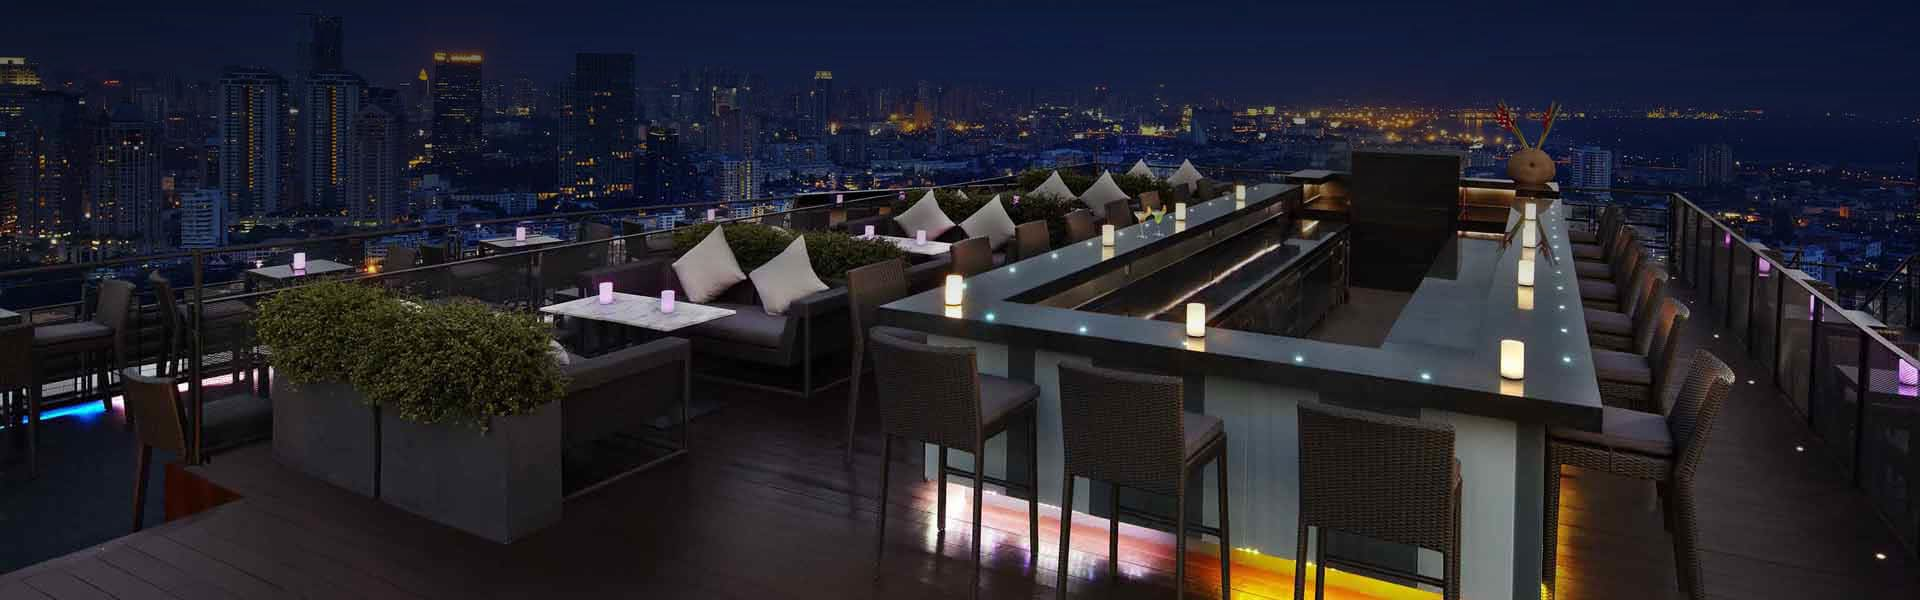 Bangkok Rooftop Restaurant | ZOOM Sky Bar & Restaurant at Anantara